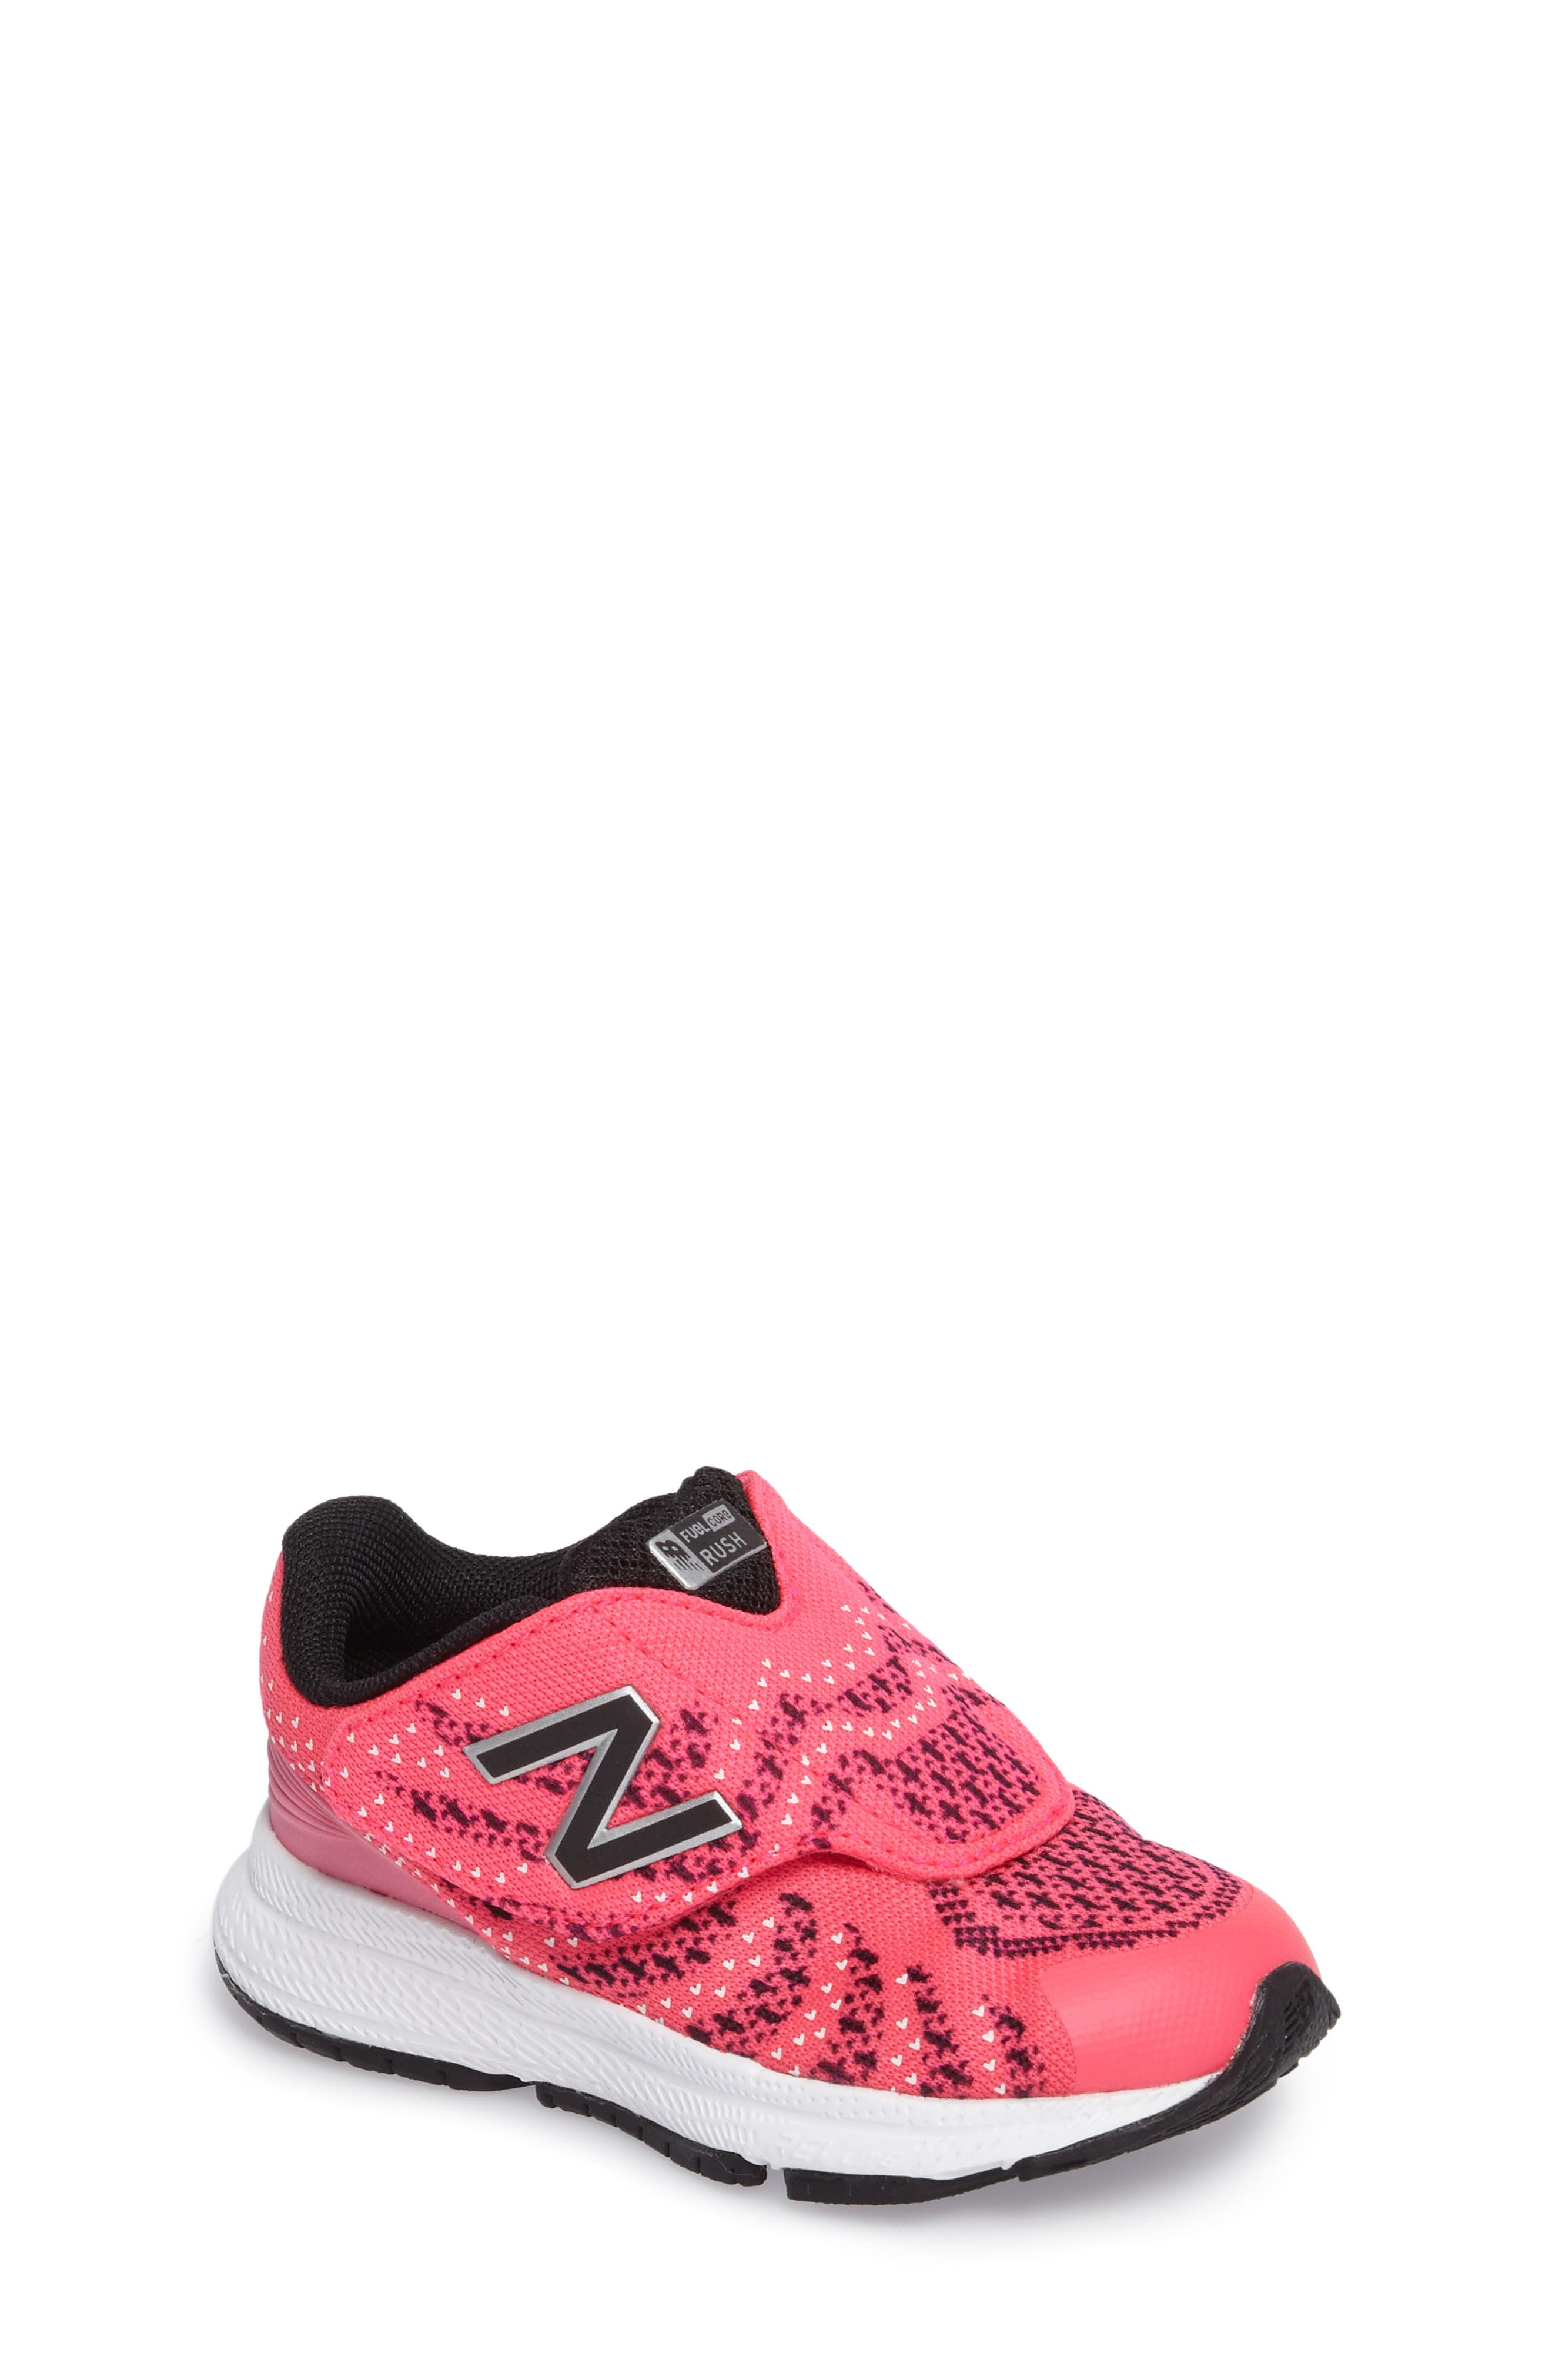 FuelCore Rush v3 Knit Sneaker,                             Main thumbnail 1, color,                             Pink